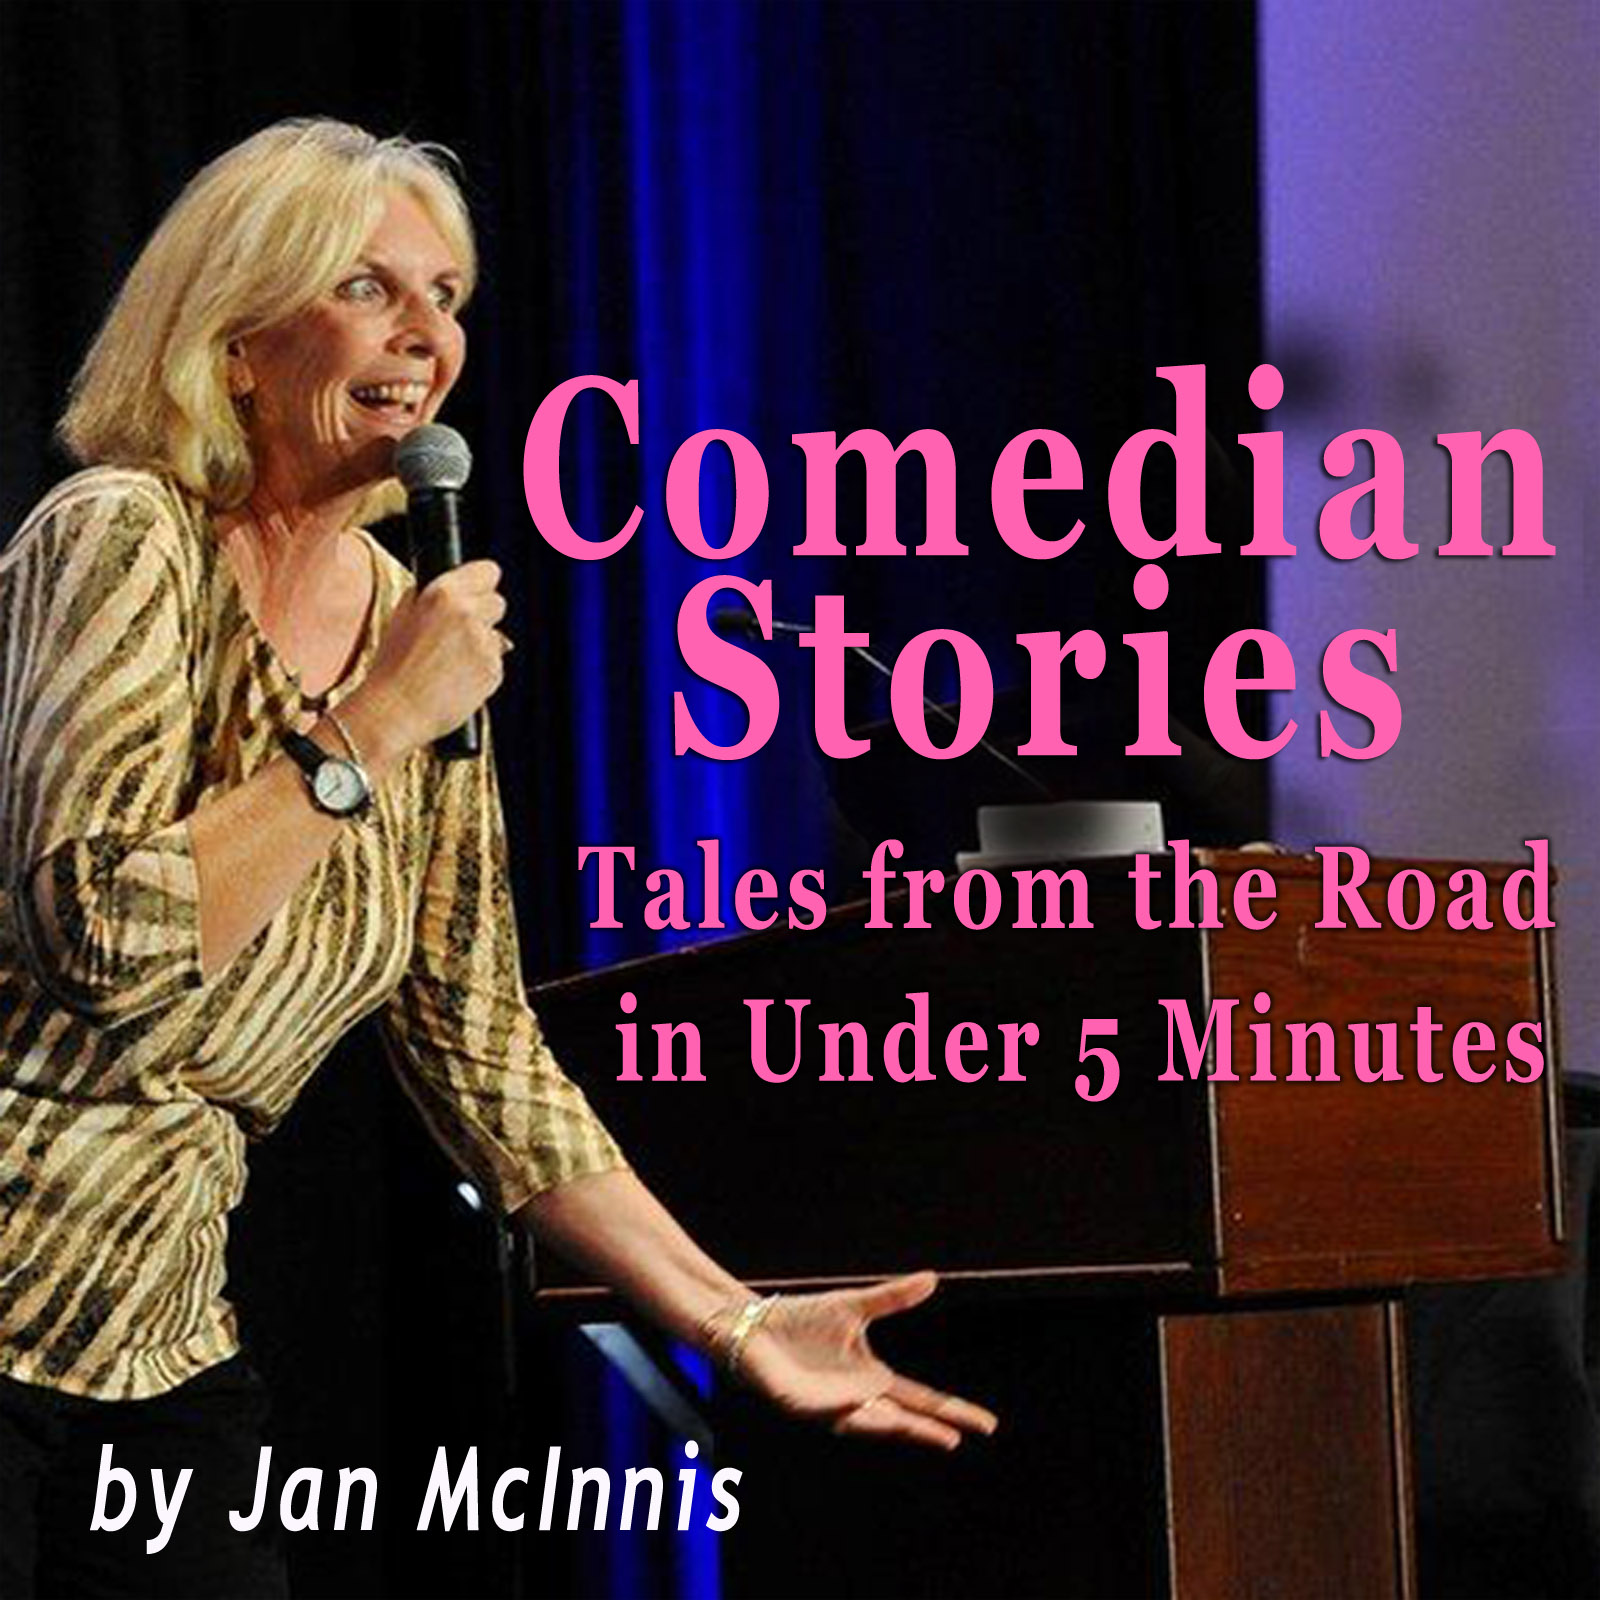 Caption: Tales From the Road in Under 5 Minutes, Credit: Comedian Jan McInnis